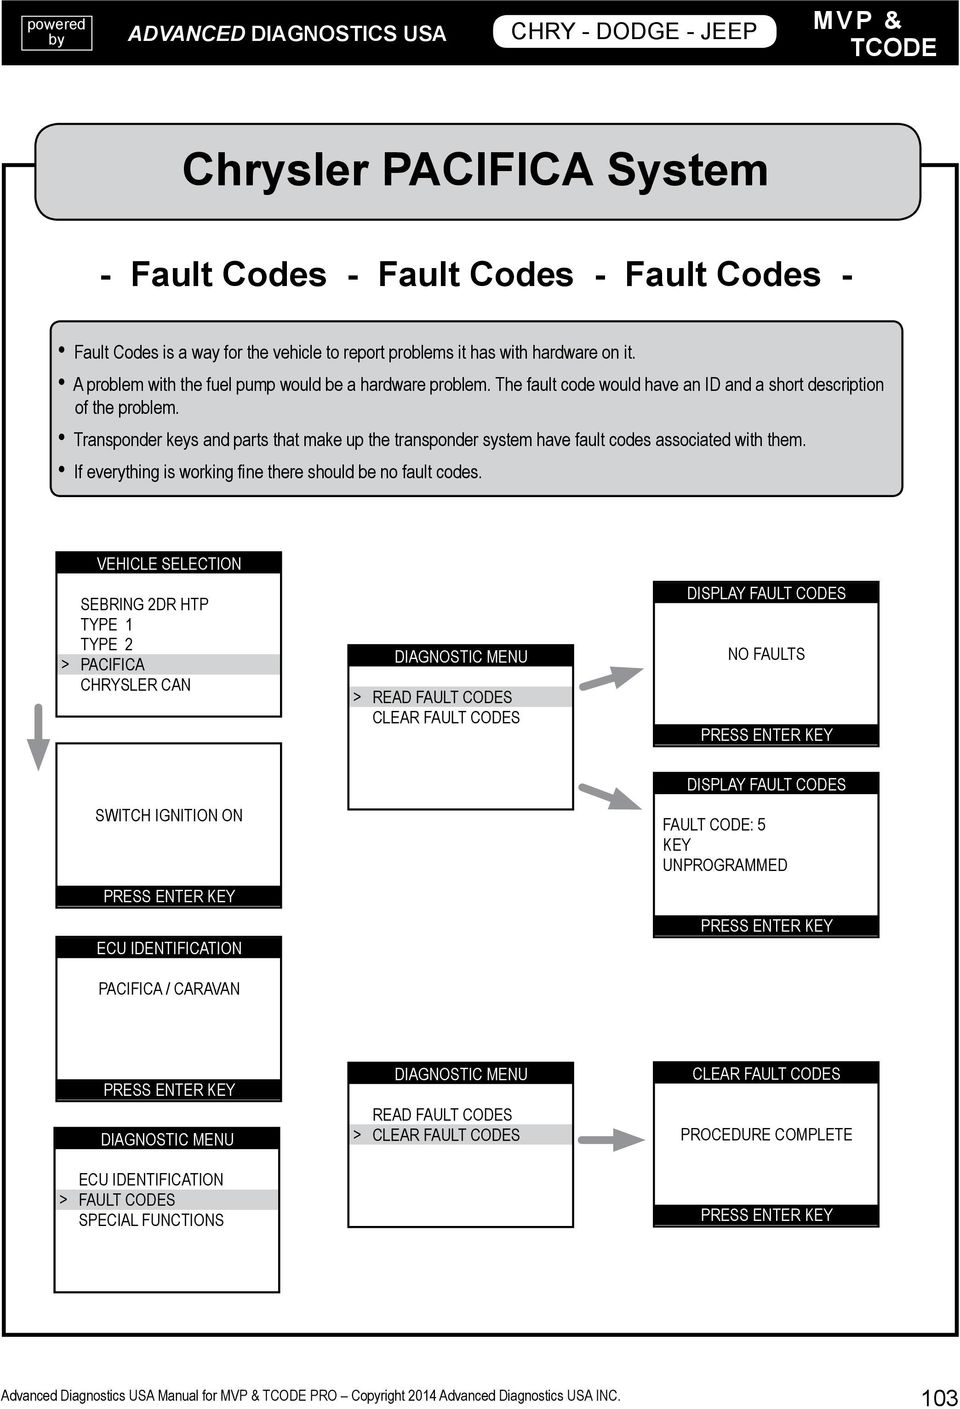 Chrysler Dodge Jeep Plymouth Pdf 2004 Caravan 38lwiring Diagramoemfactory Alarm System Transponder Keys And Parts That Make Up The Have Fault Codes Associated With Them